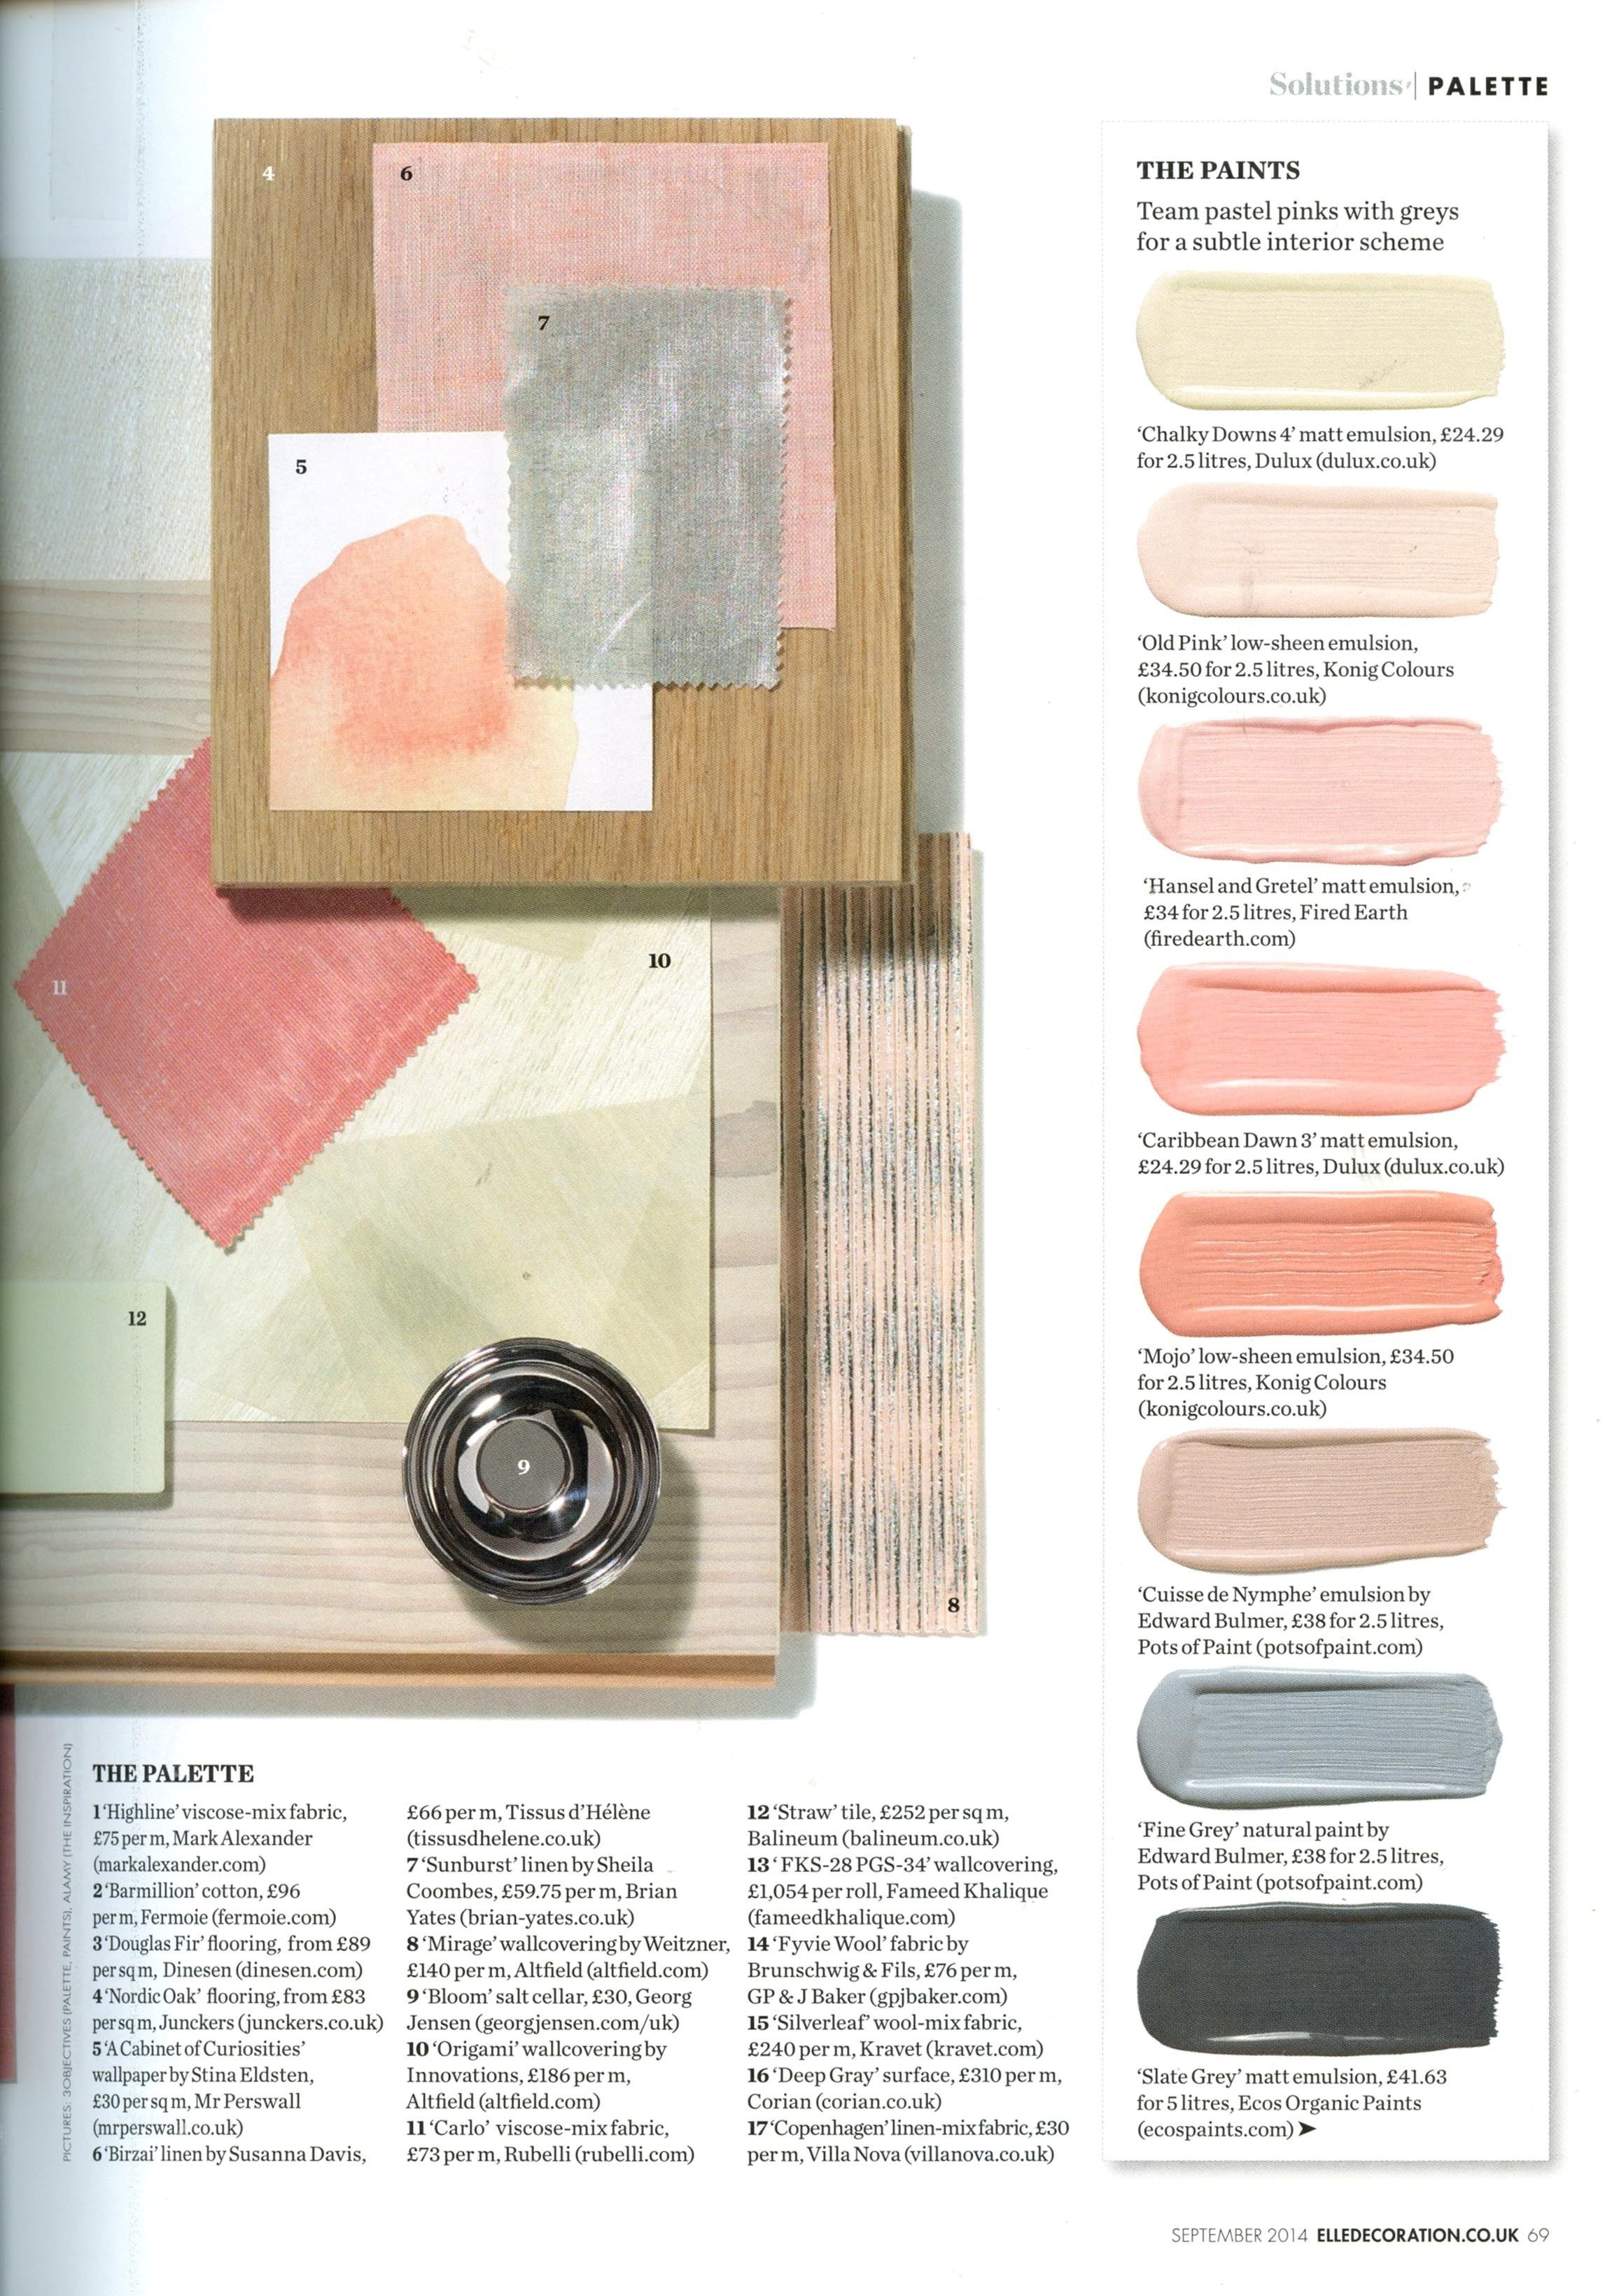 Paint Colors Via Elle Decoration, September 2014